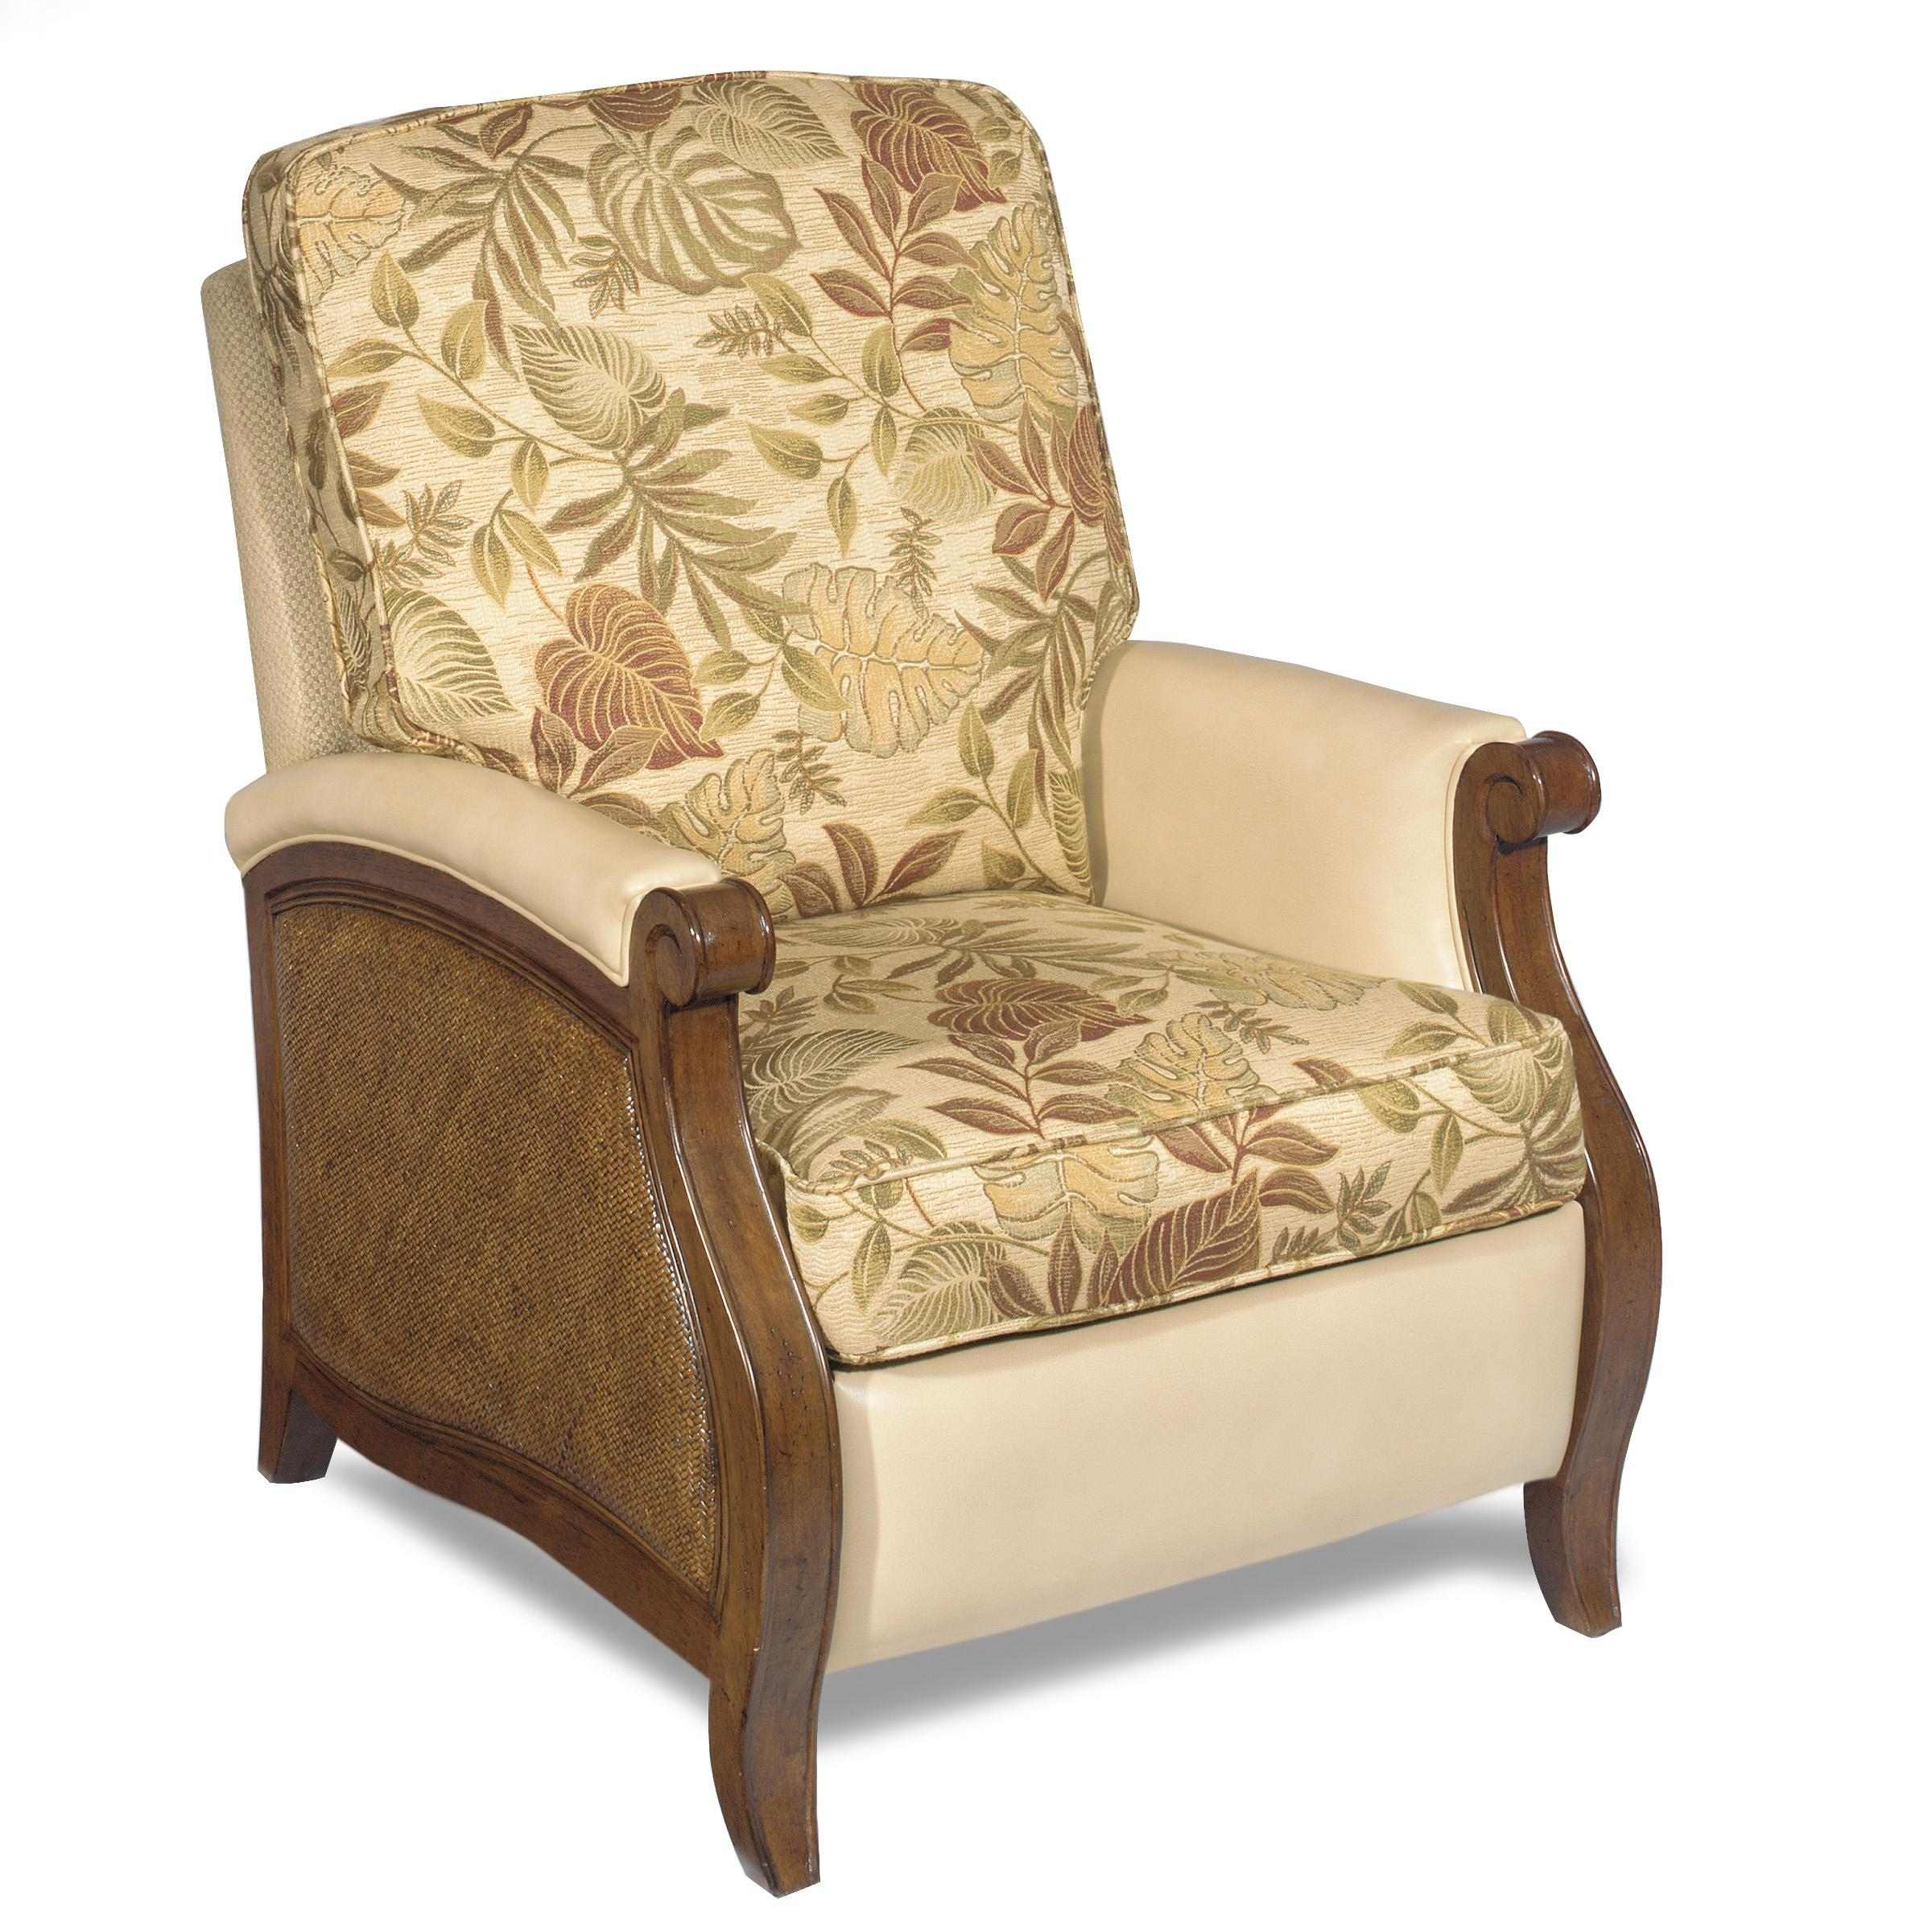 Hooker Furniture Windward Recliner - Item Number: 1125-52010